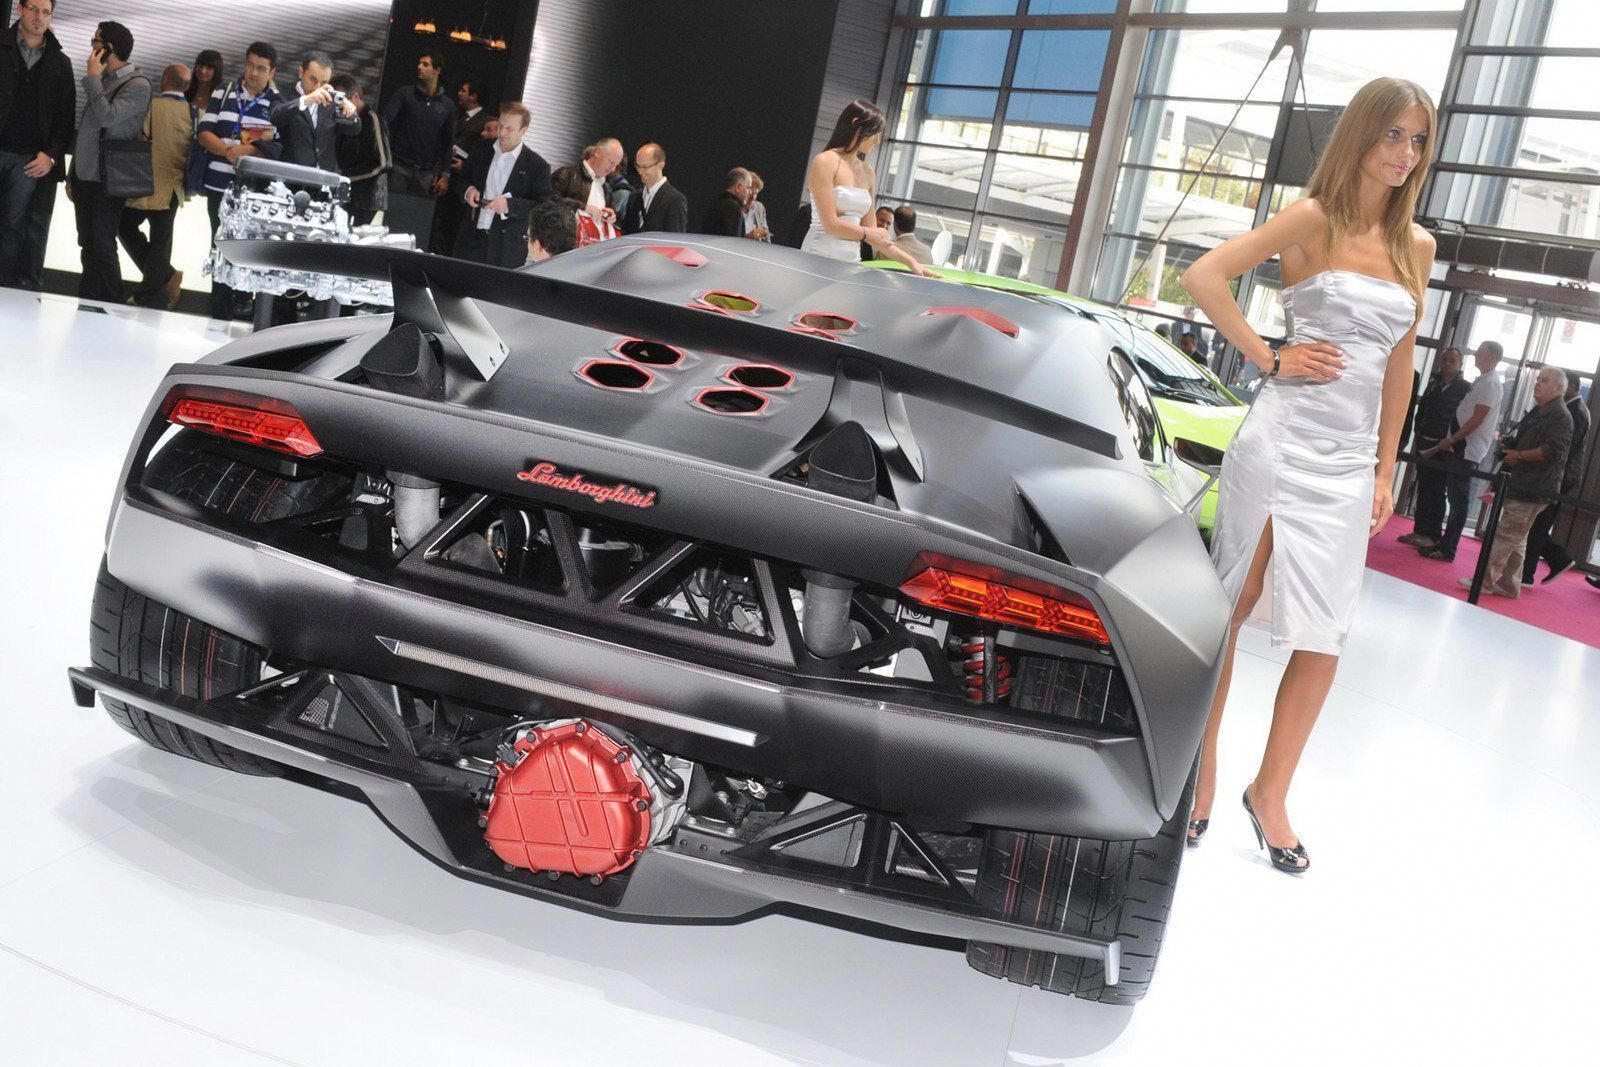 An insane Lamborghini Sesto Elemento is currently for sale in the UK. #lamborghinisestoelemento #lamborghinisestoelemento An insane Lamborghini Sesto Elemento is currently for sale in the UK. #lamborghinisestoelemento #lamborghinisestoelemento An insane Lamborghini Sesto Elemento is currently for sale in the UK. #lamborghinisestoelemento #lamborghinisestoelemento An insane Lamborghini Sesto Elemento is currently for sale in the UK. #lamborghinisestoelemento #lamborghinisestoelemento